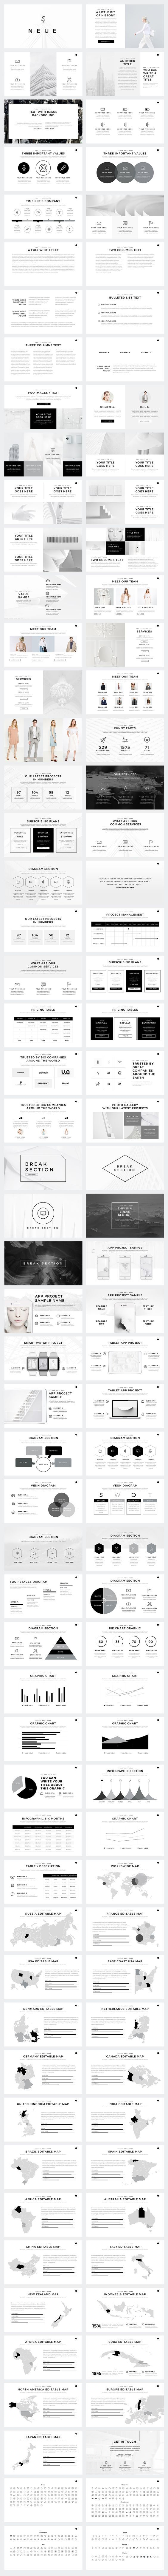 Present your works in a professional and clean way with Neue Minimal PowerPoint Template.